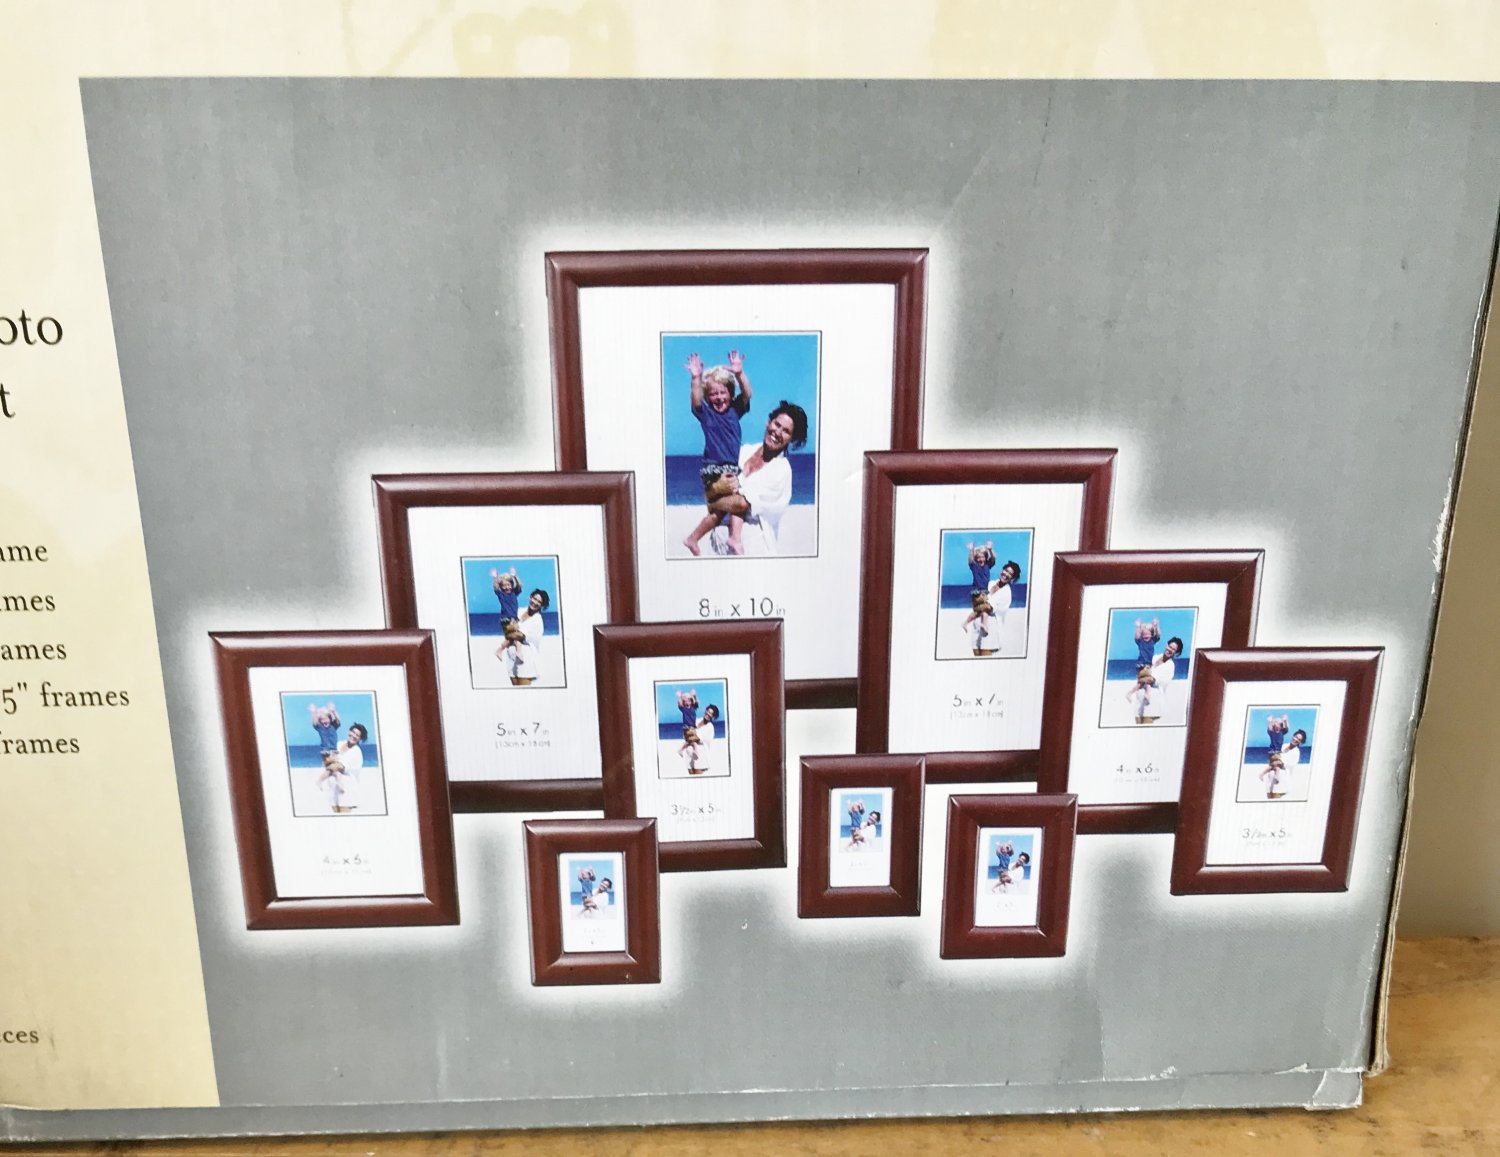 NIB PHOTO FRAME SET 10 PIECE Gallery Interior CHERRY WOOD Home Decor GIFT